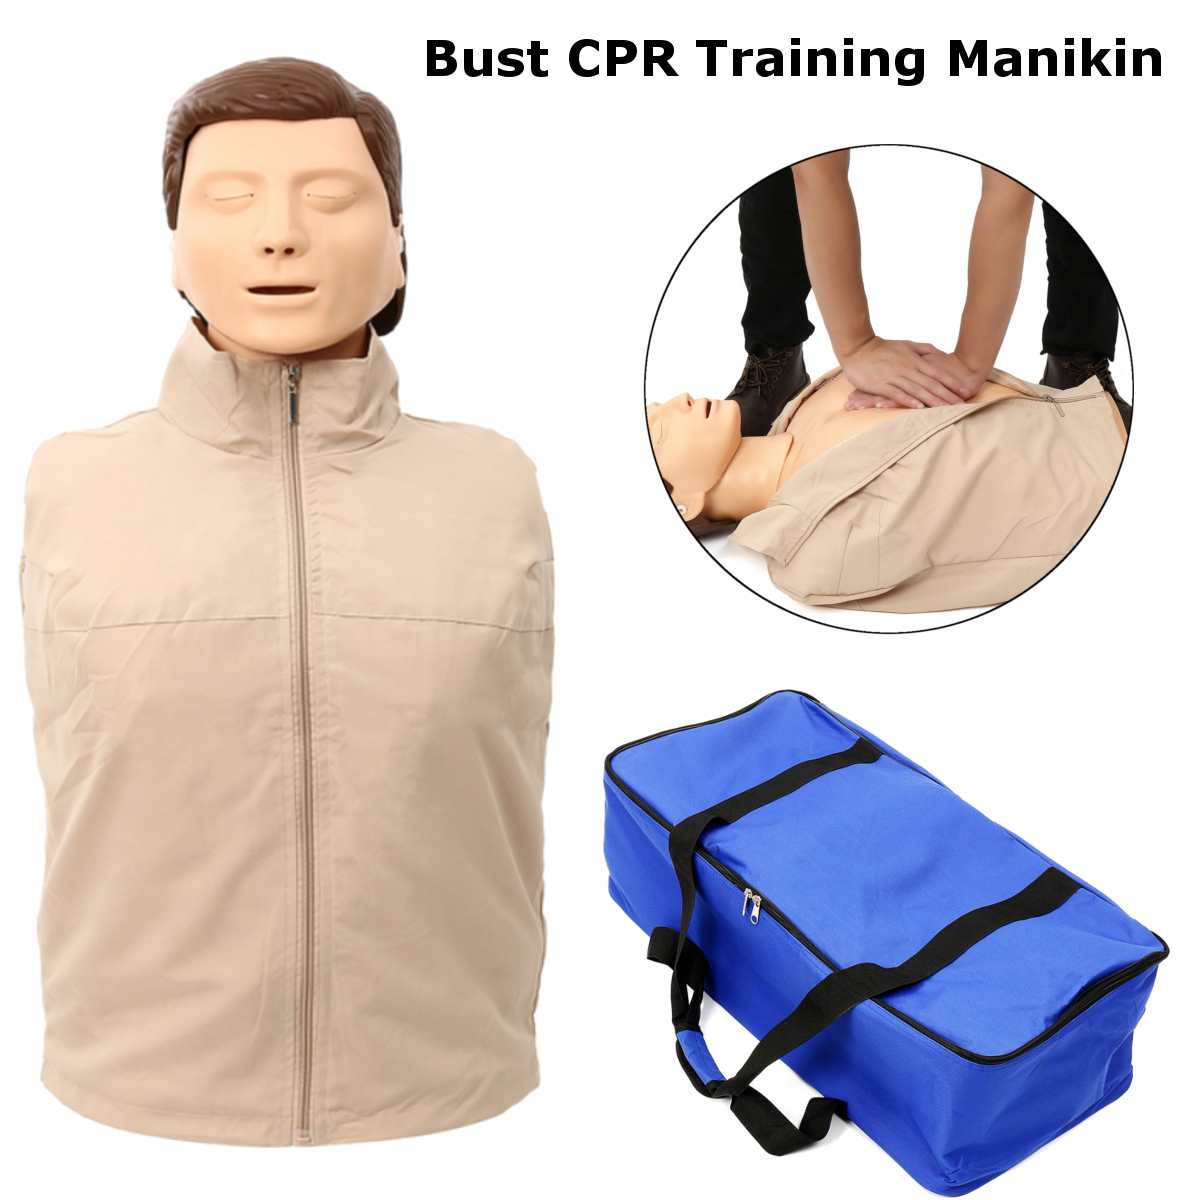 70x22x34cm Bust CPR Training Manikin Professional Nursing Training Mannequin Medical Model Human First Aid Training Model New